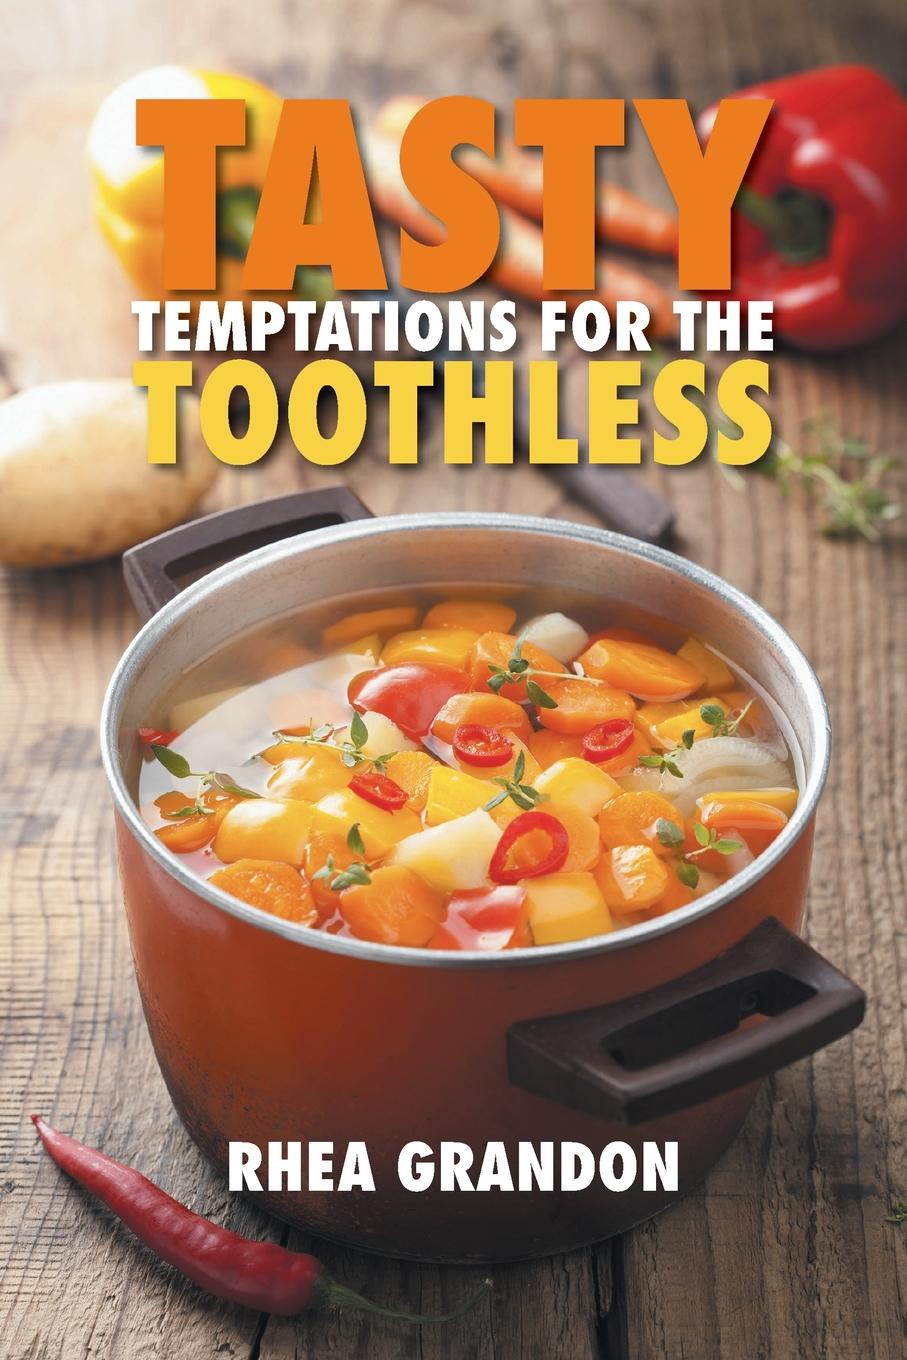 лучшая цена Rhea Grandon Tasty Temptations for the Toothless